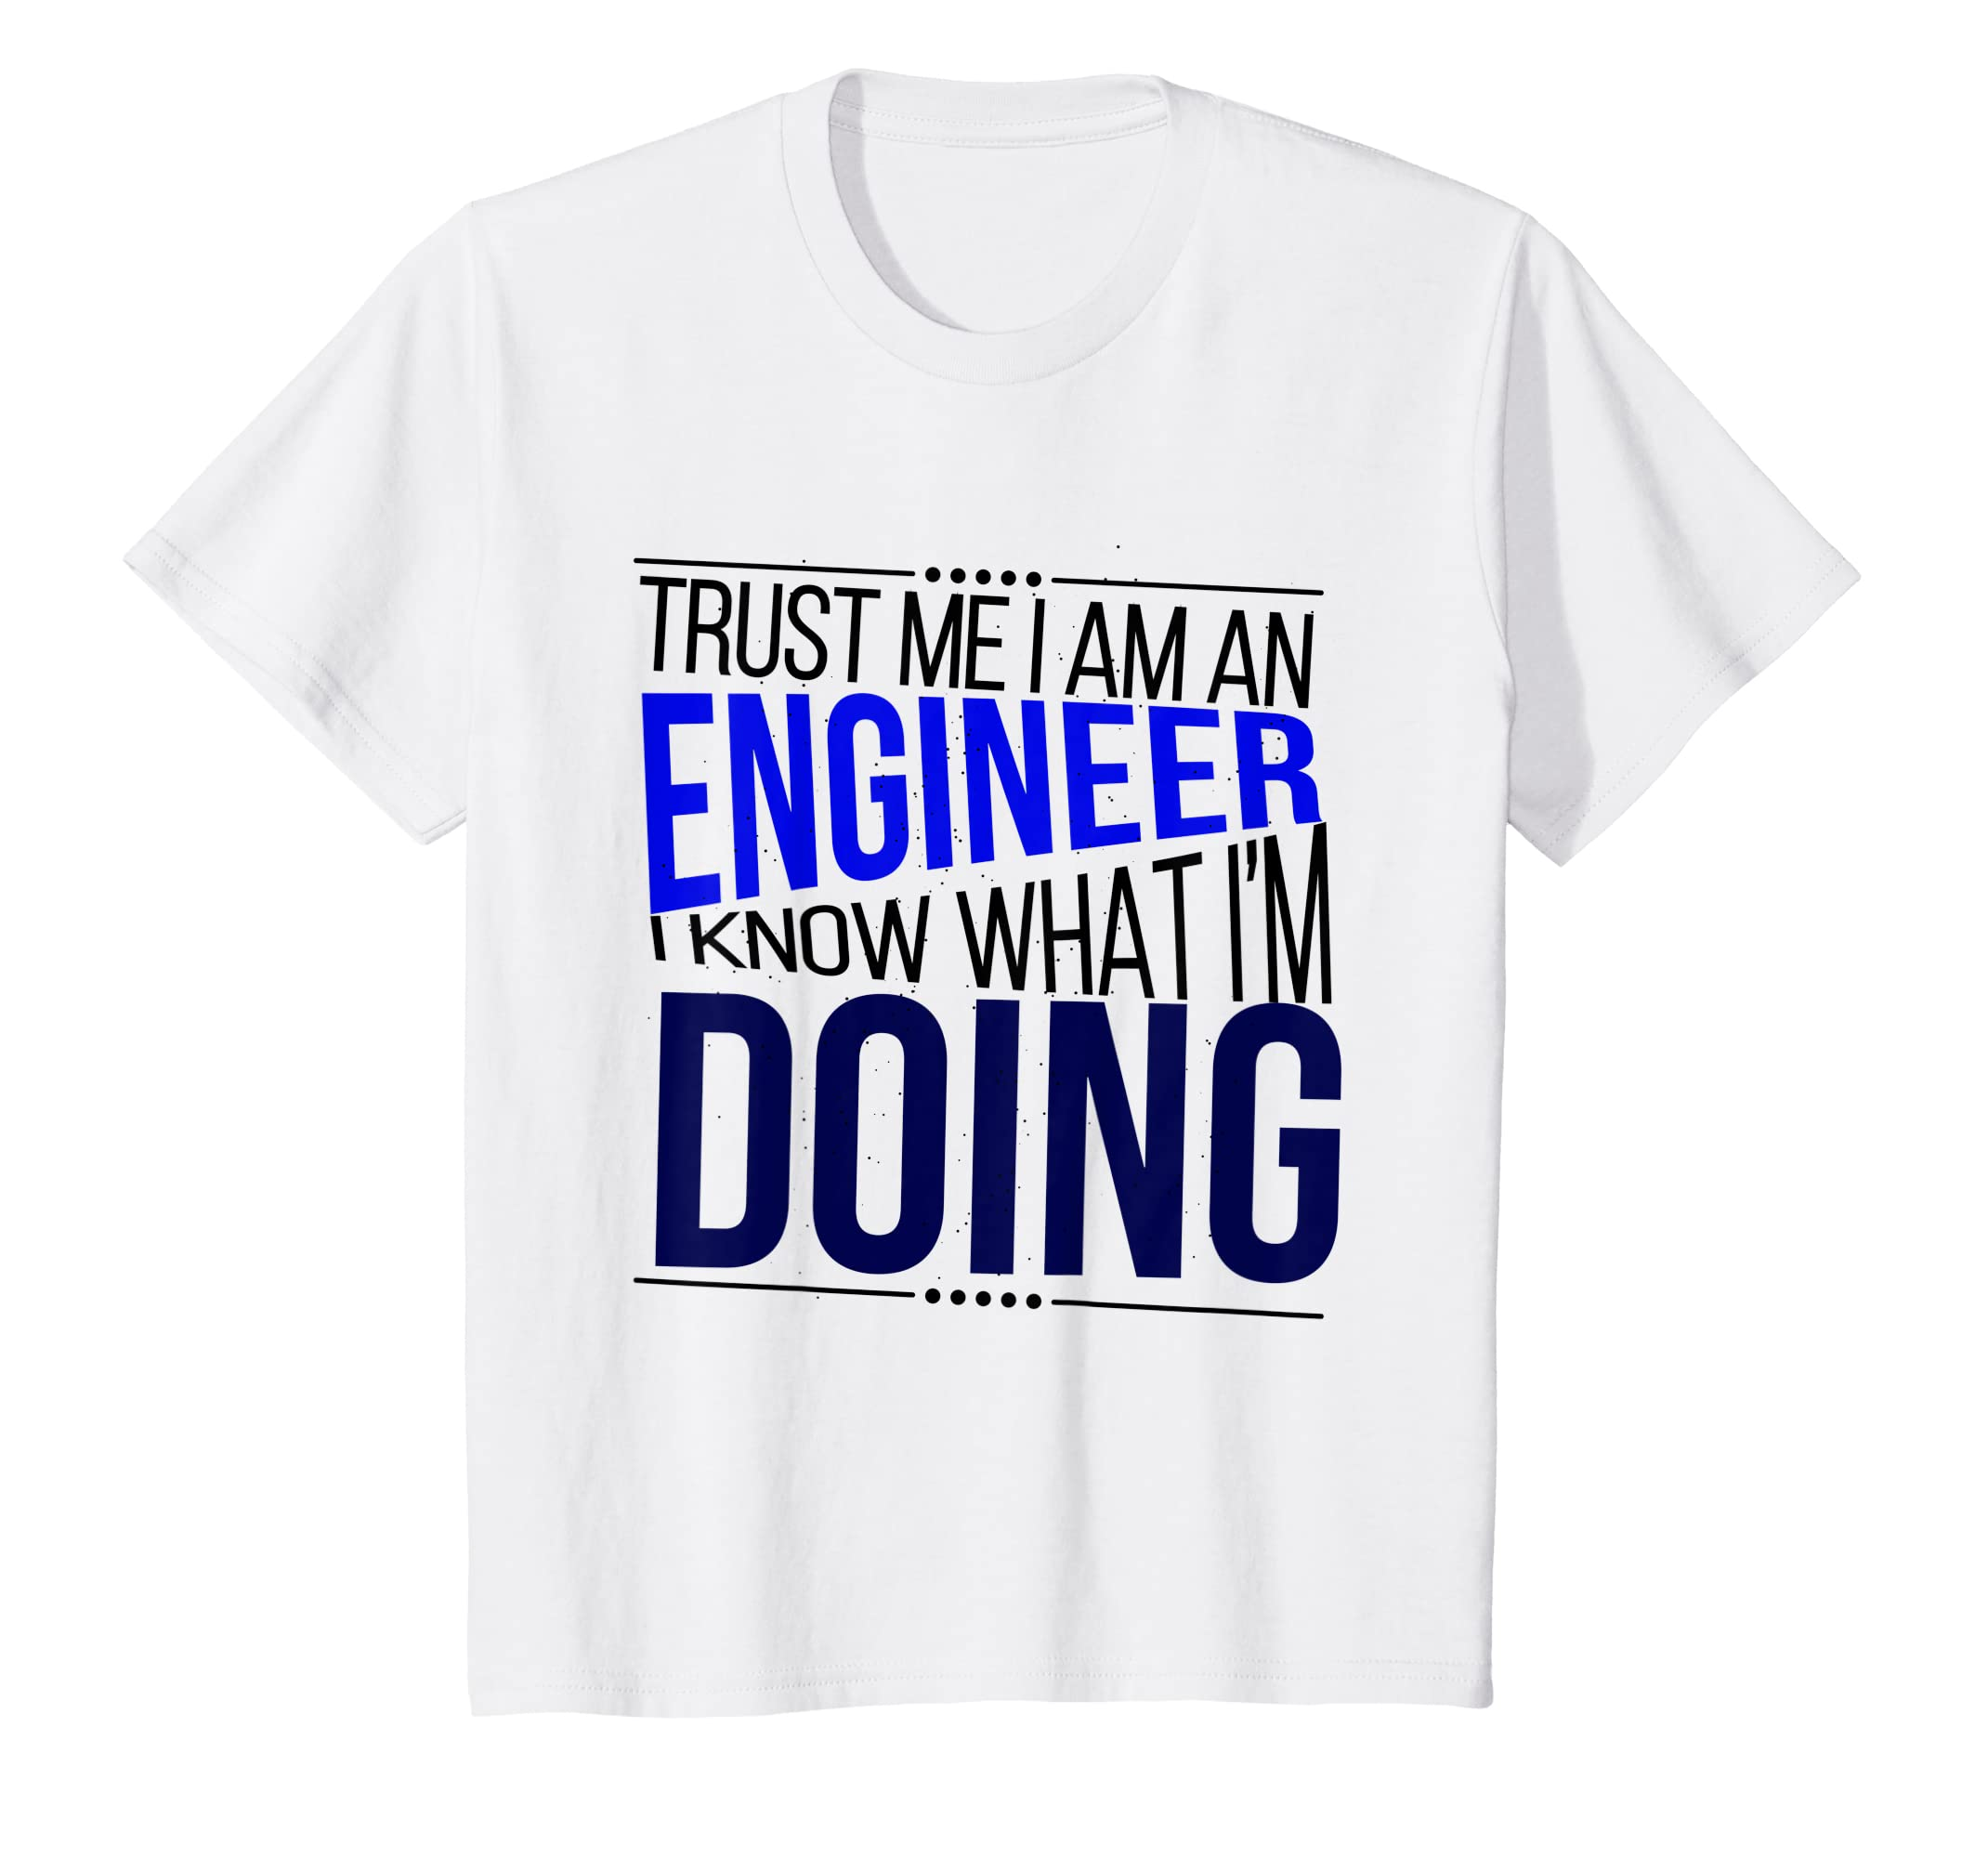 04430601 Amazon.com: Funny Trust Me I Am An Engineer Shirt Engineering: Clothing